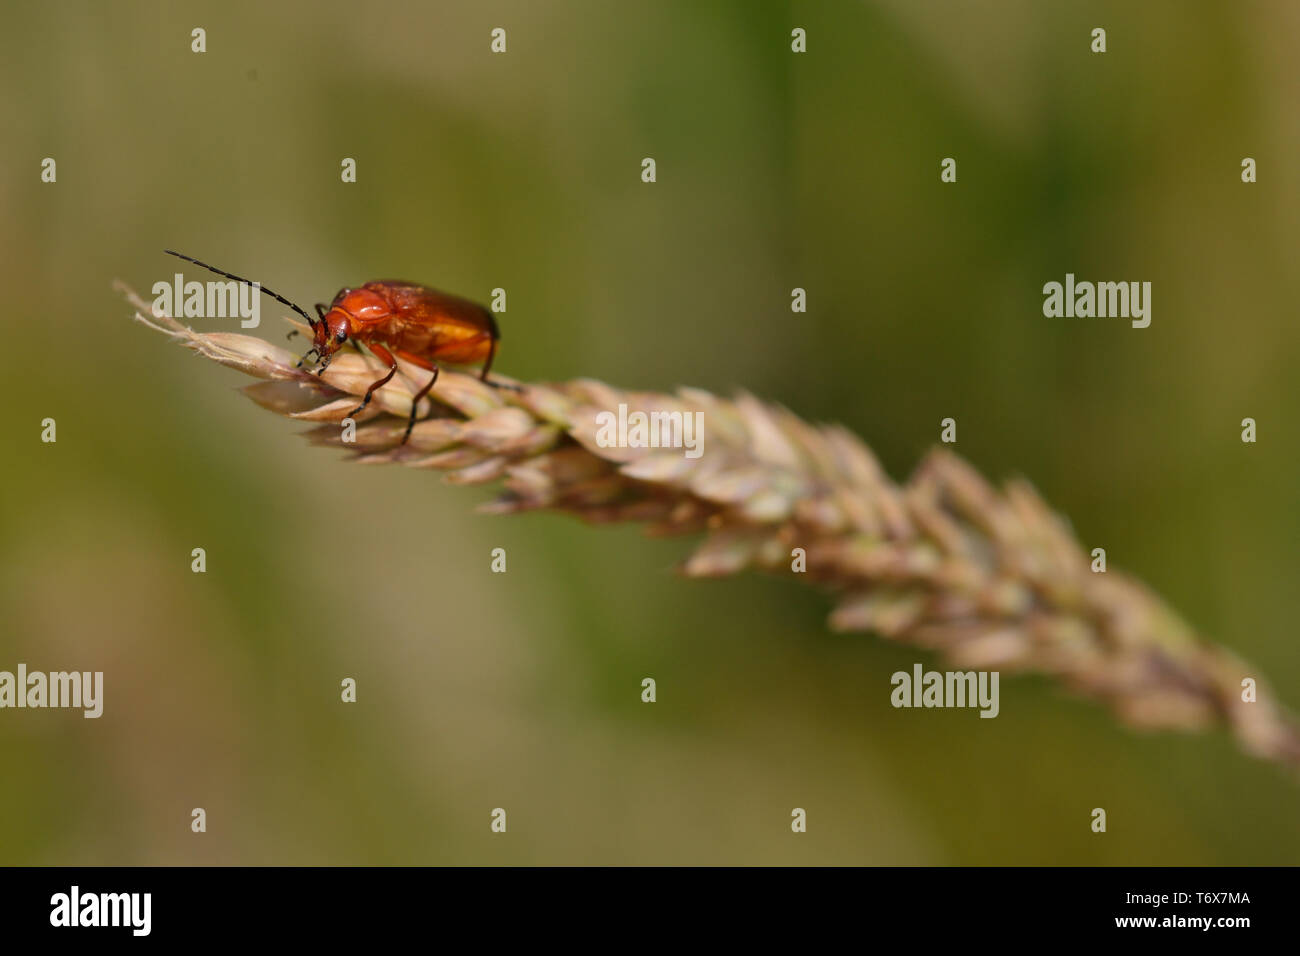 Red Soldier Beetle on grass in Stoke Park, Bristol, England.  Otherwise known as the 'Bloodsucker' and 'Hogweed Bonking' Beetle. - Stock Image